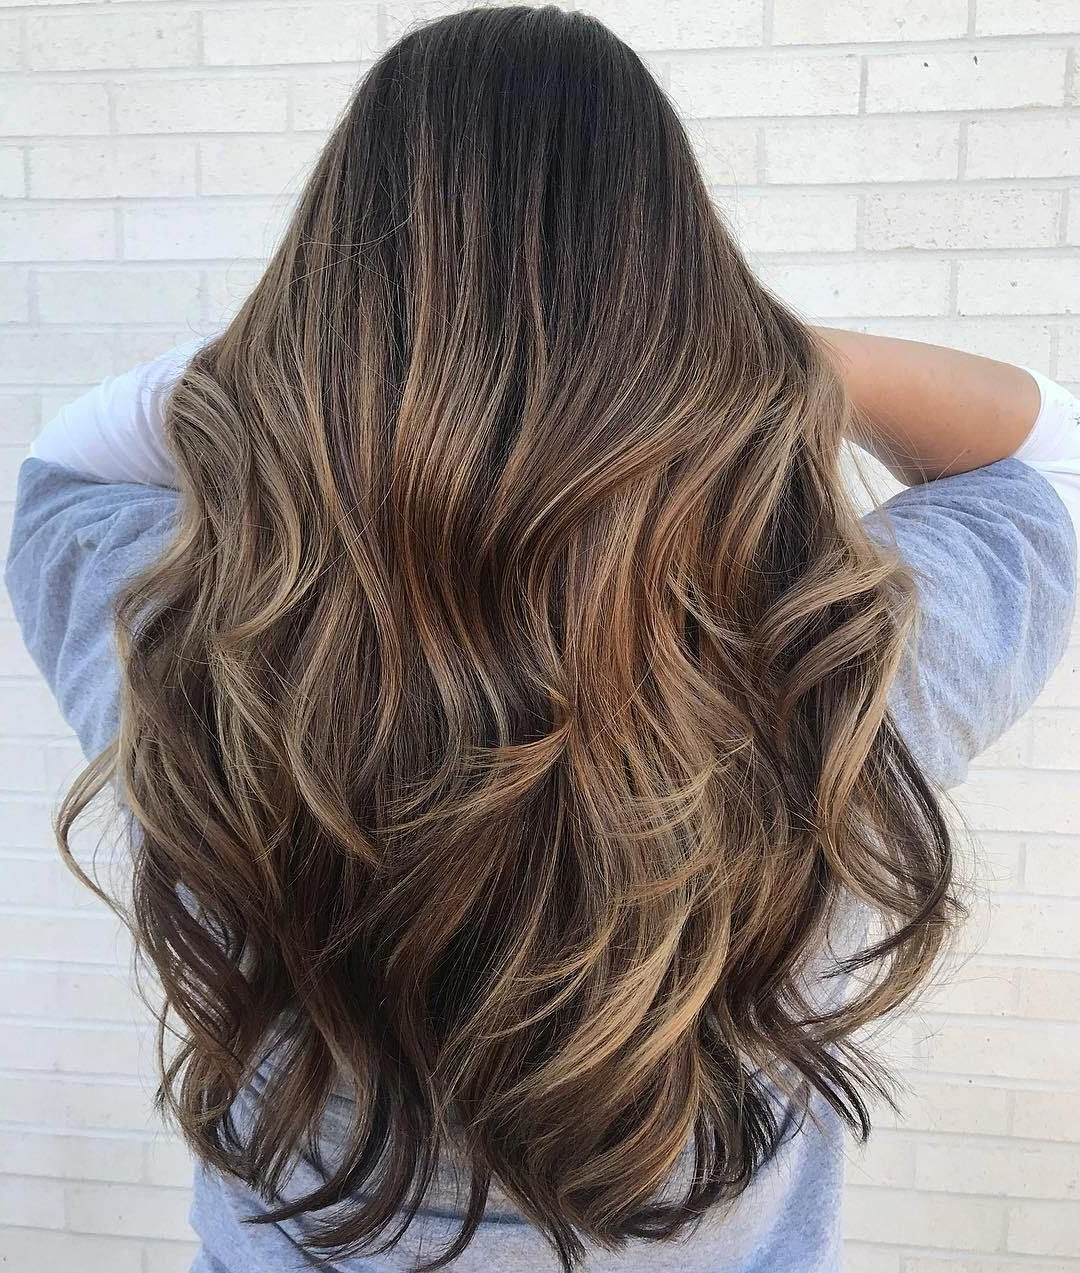 2018 Curly Golden Brown Balayage Long Hairstyles Pertaining To Long Wavy Light Brown Balayage Hair #longhairstyles (View 5 of 20)